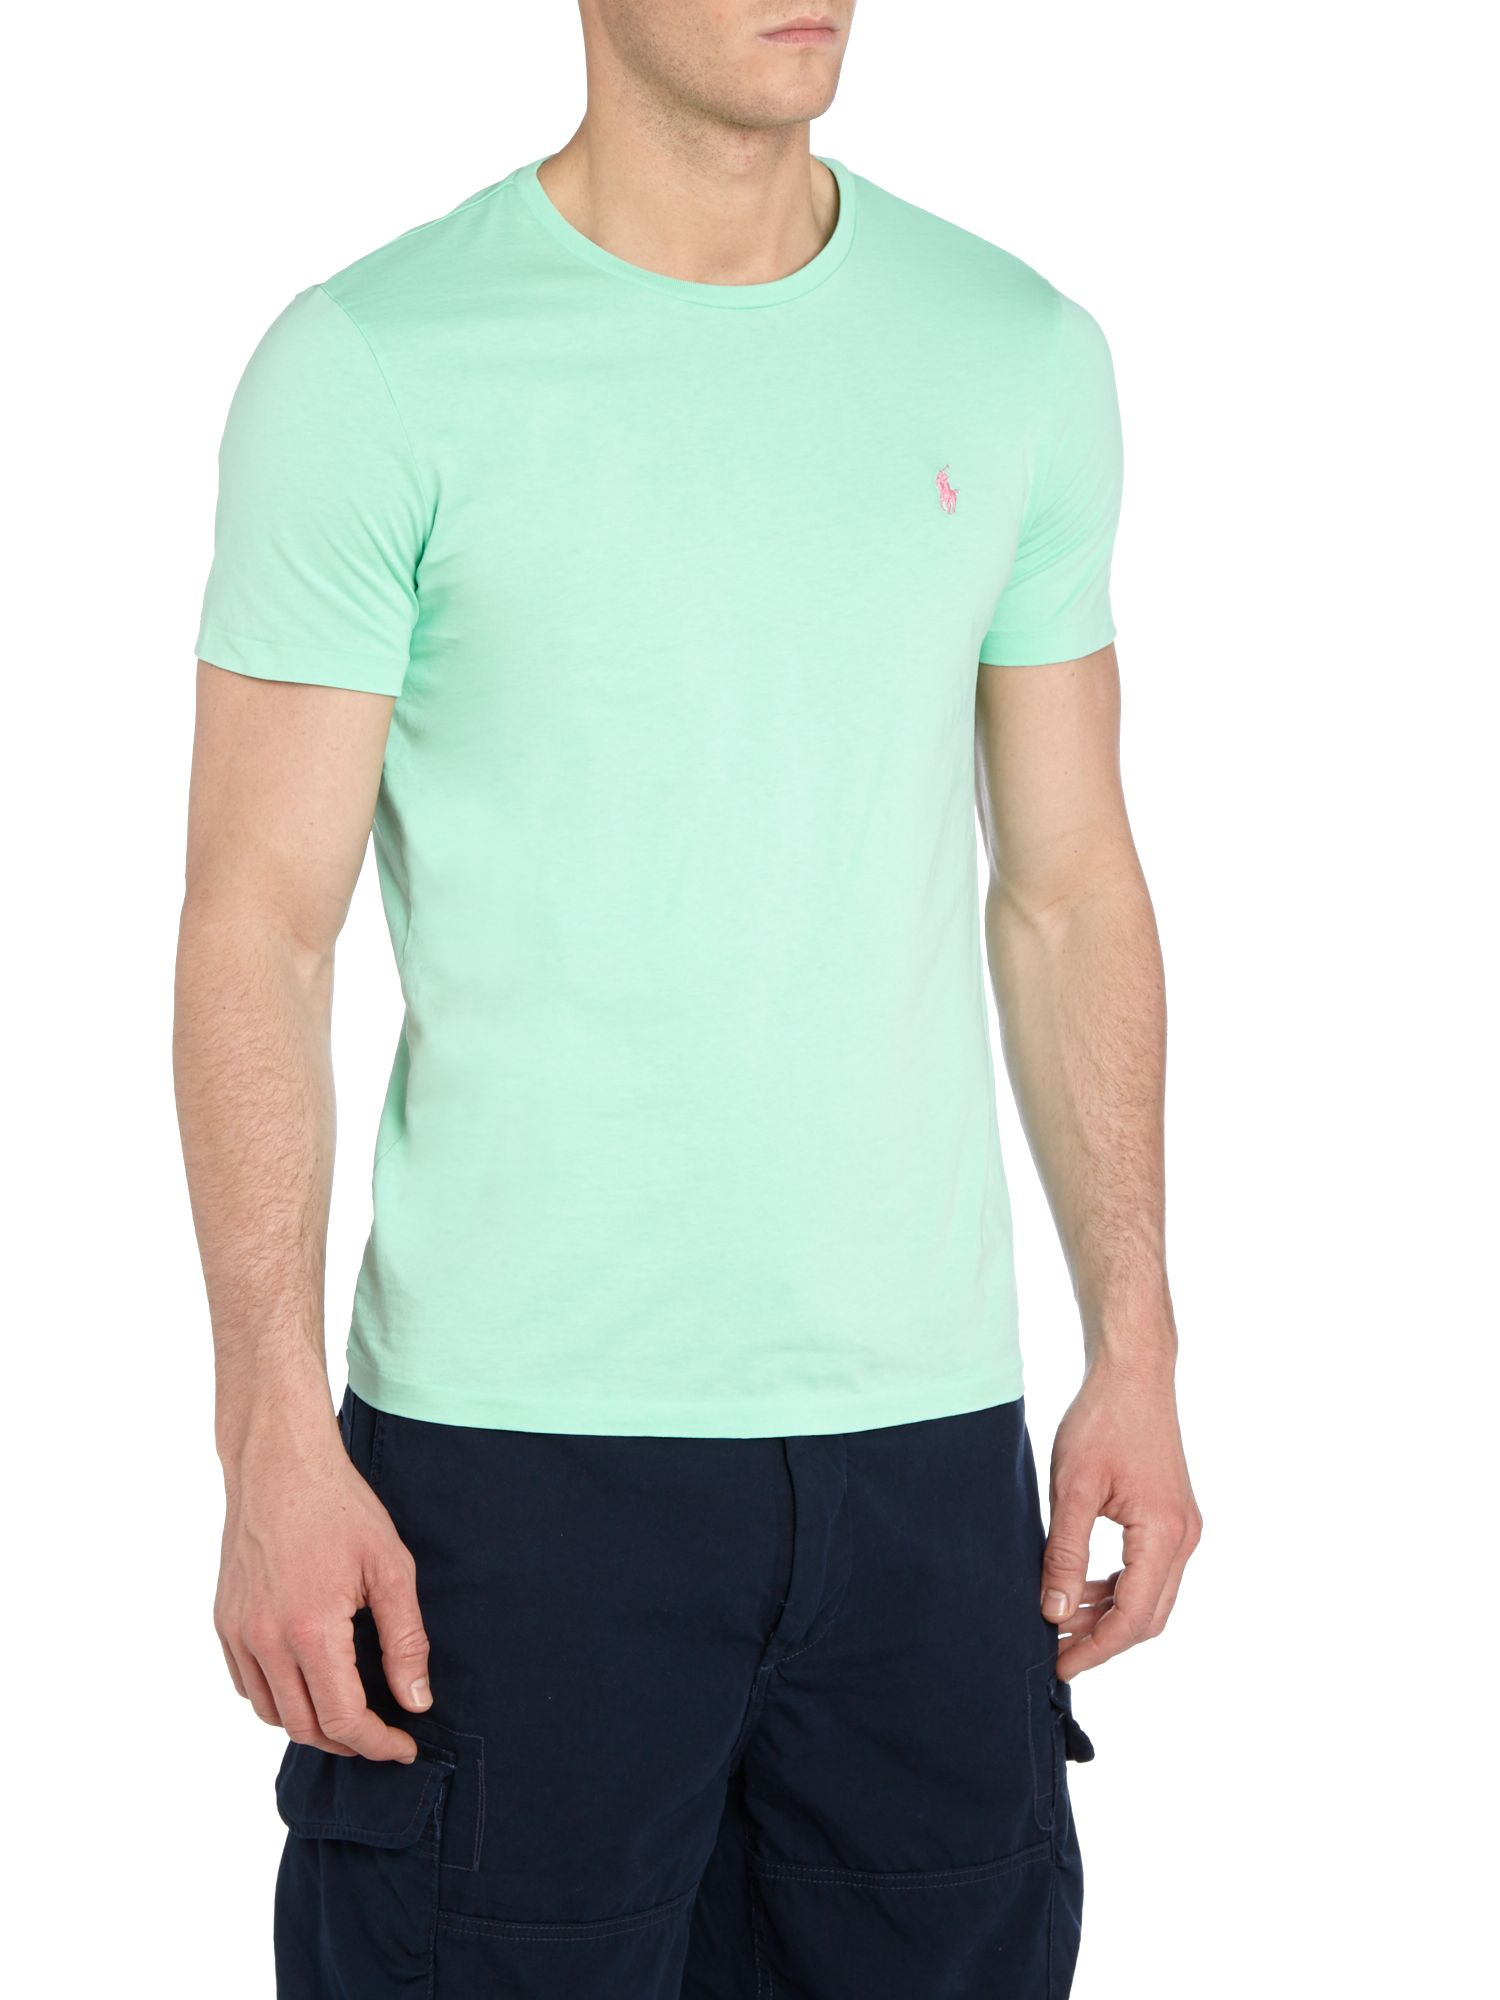 polo ralph lauren classic custom fit tshirt in blue for